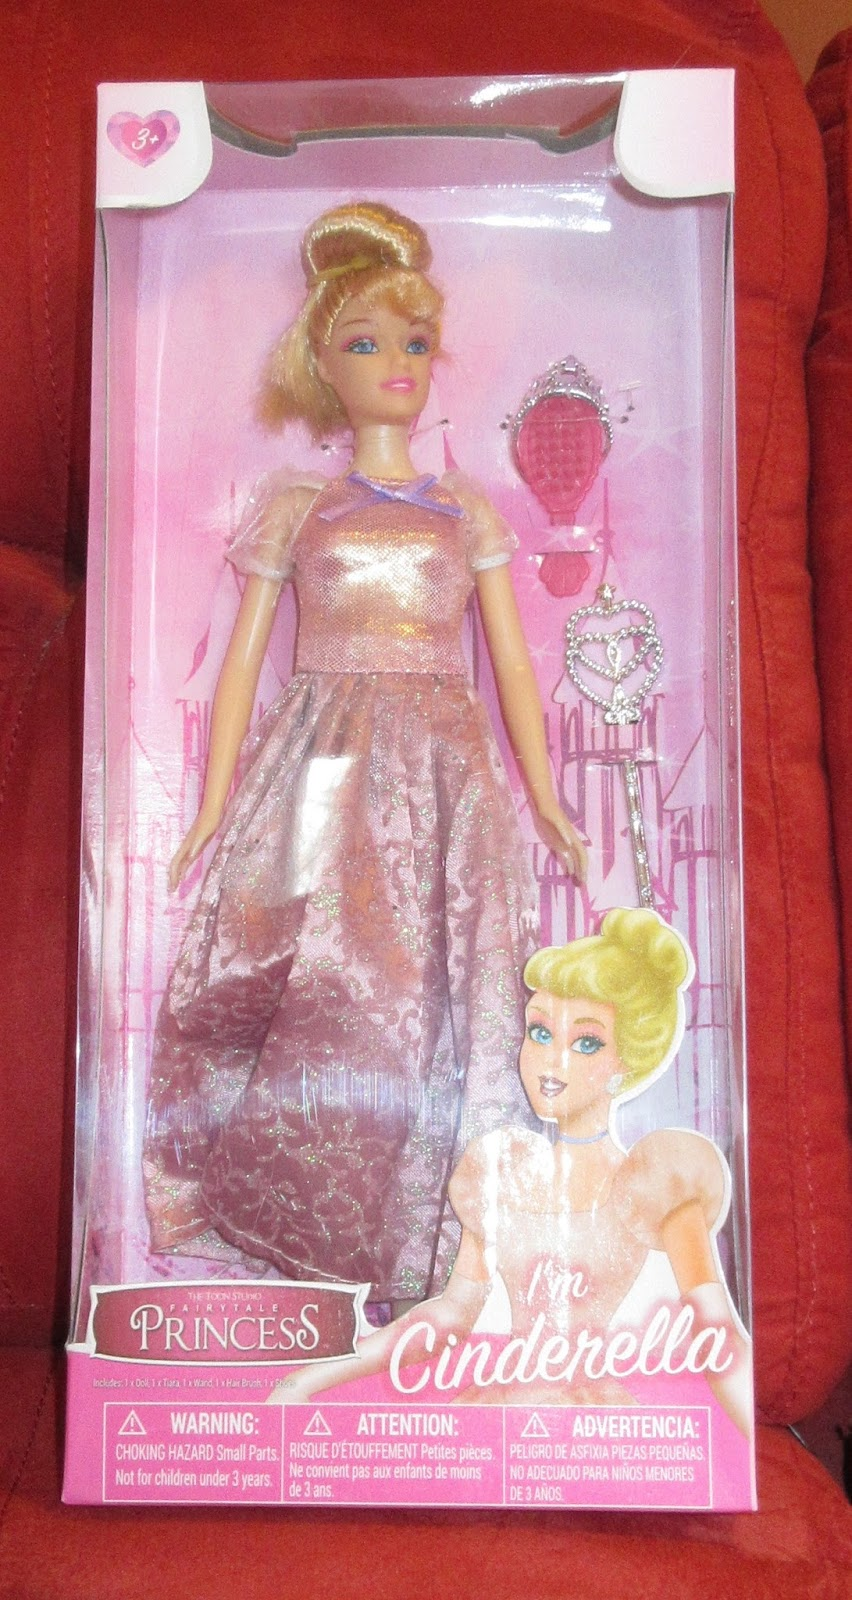 Dependable Two Barbie Dolls Barbie Starr 1979 And Barbie Mold Superstar Easy To Use Giocattoli E Modellismo